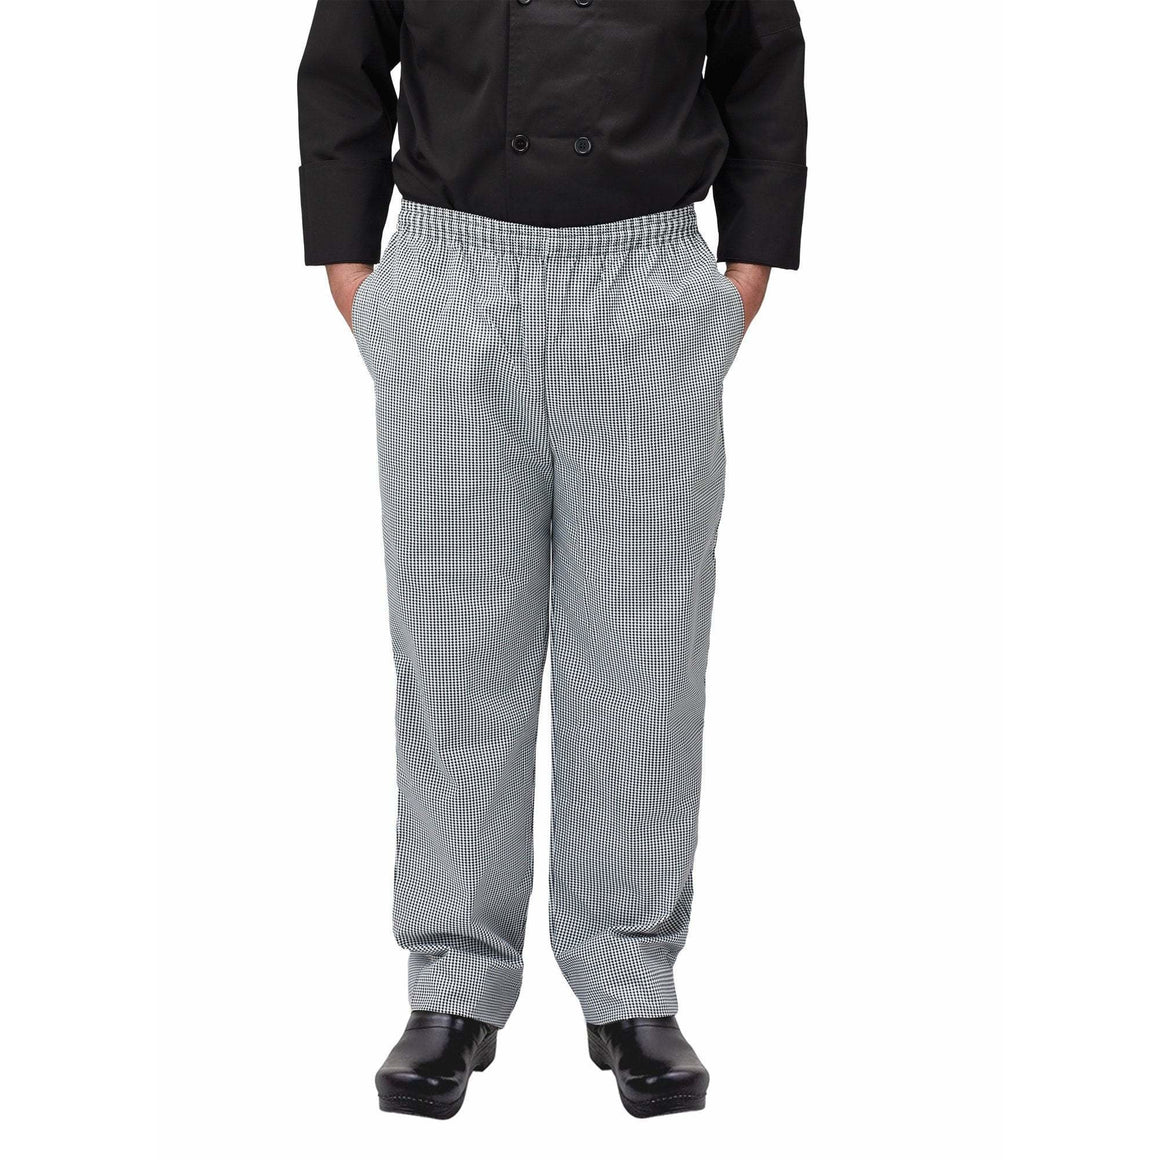 Winco - UNF-4KL - Chef pants, houndstooth, L - Apparel